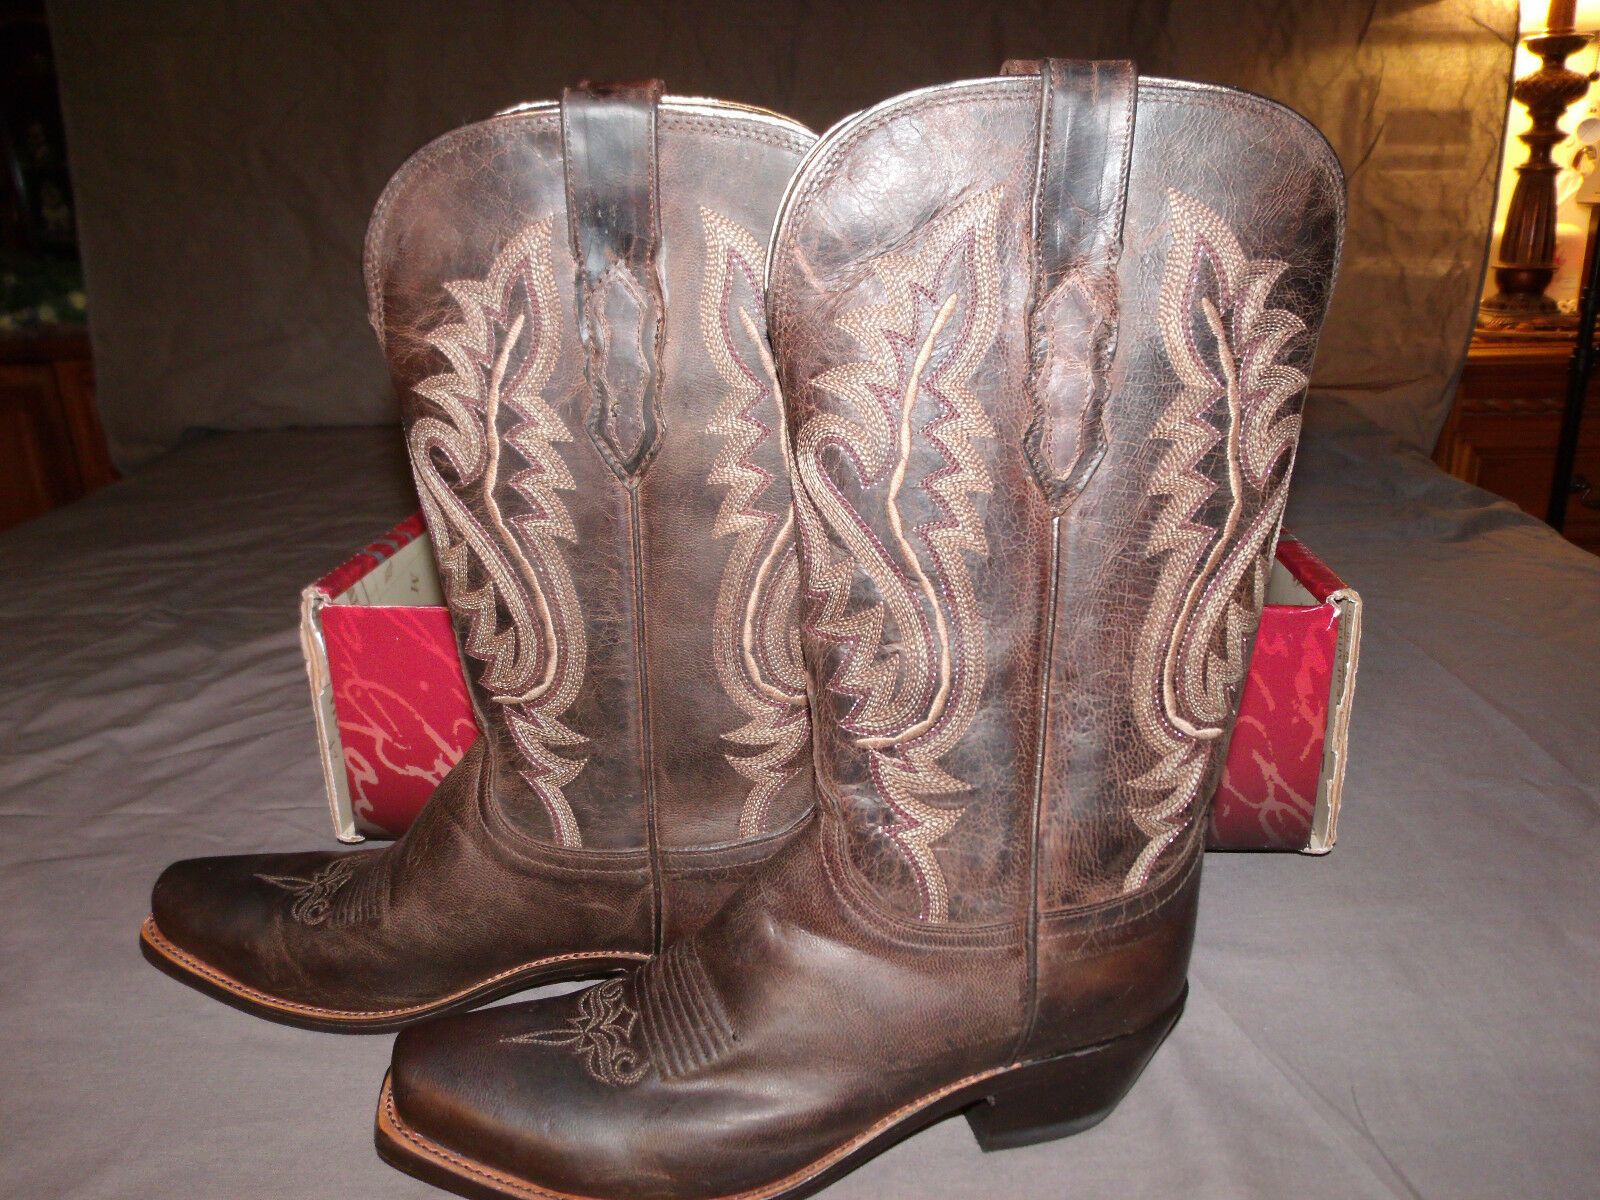 New Lucchese Women's Boots M5002.74 Chocolate Madras Goat size 10.0 B